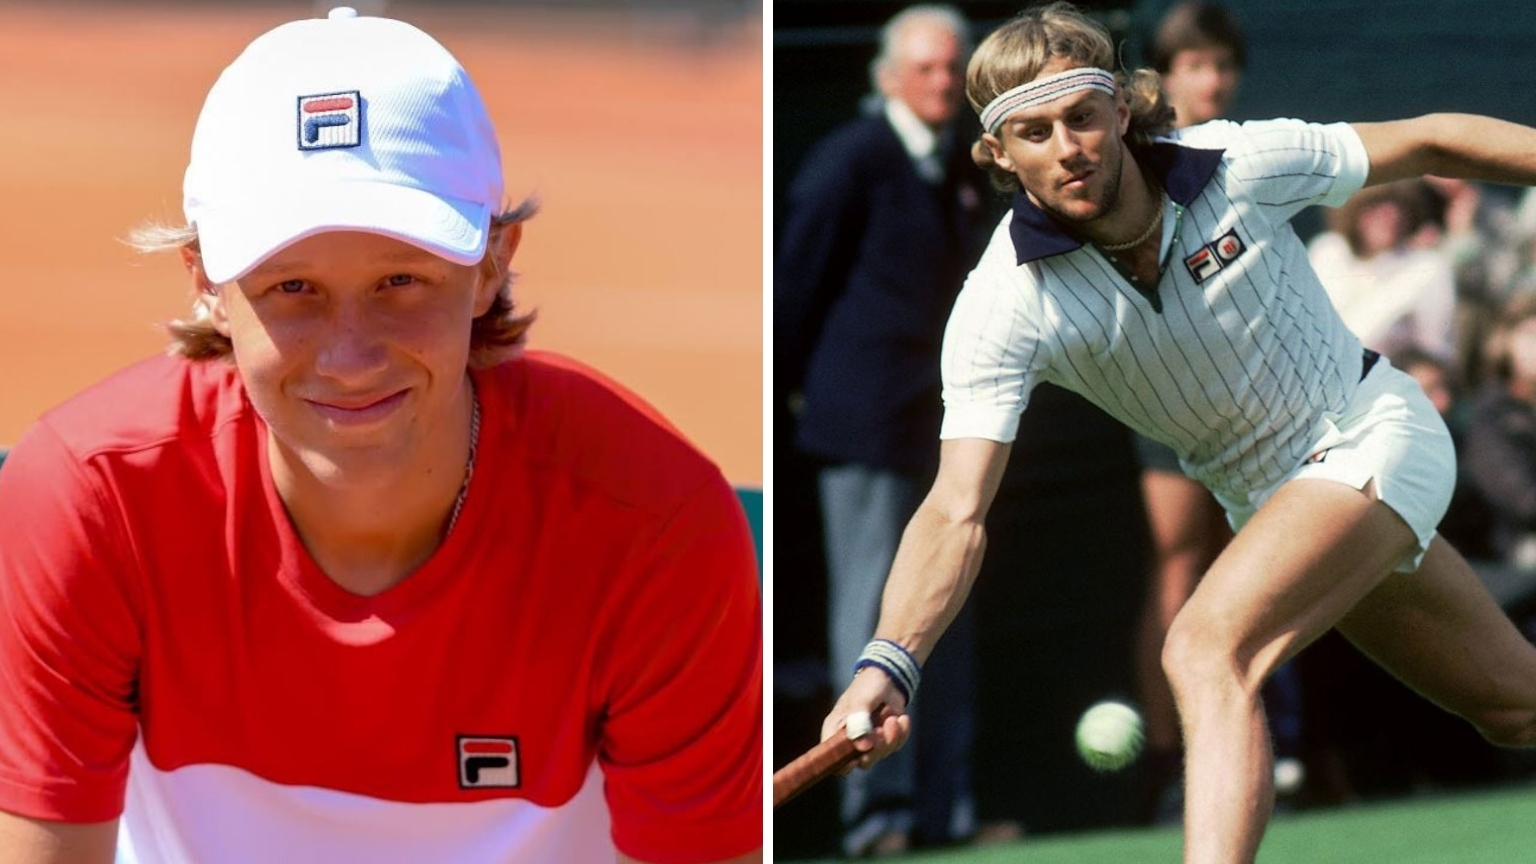 d8996f869b45 Leo Looks to Follow Father Bjorn Borg Into Professional Tennis - The Quint